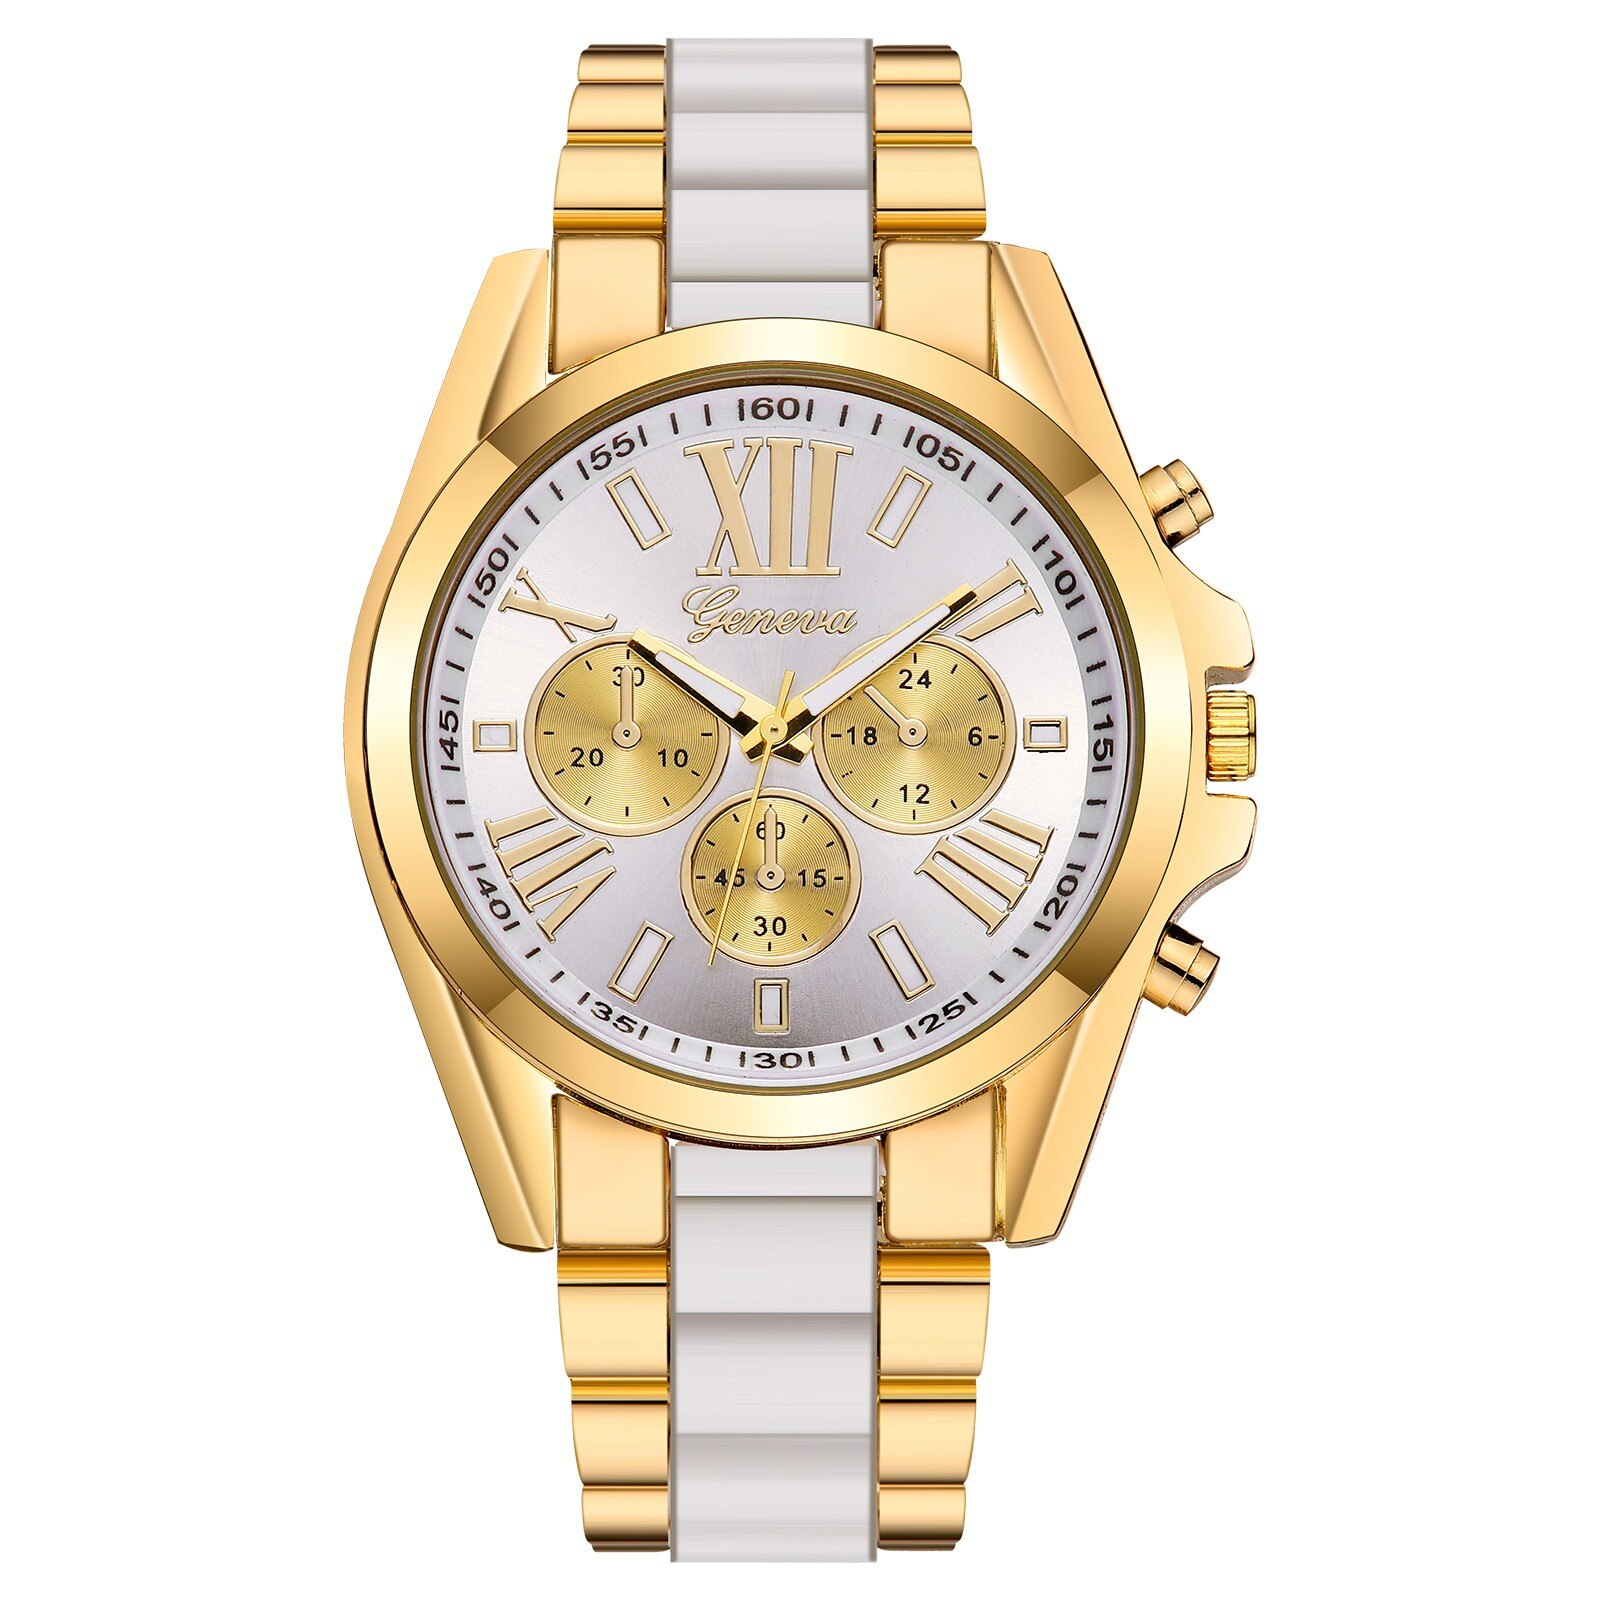 Hcf98906b721f4ce09fc452f2855664acC - Fashion Luxury Watches for Men Casual Quartz Stainless Steel Band Diamonds Business Watch relogio masculino часы мужские#40